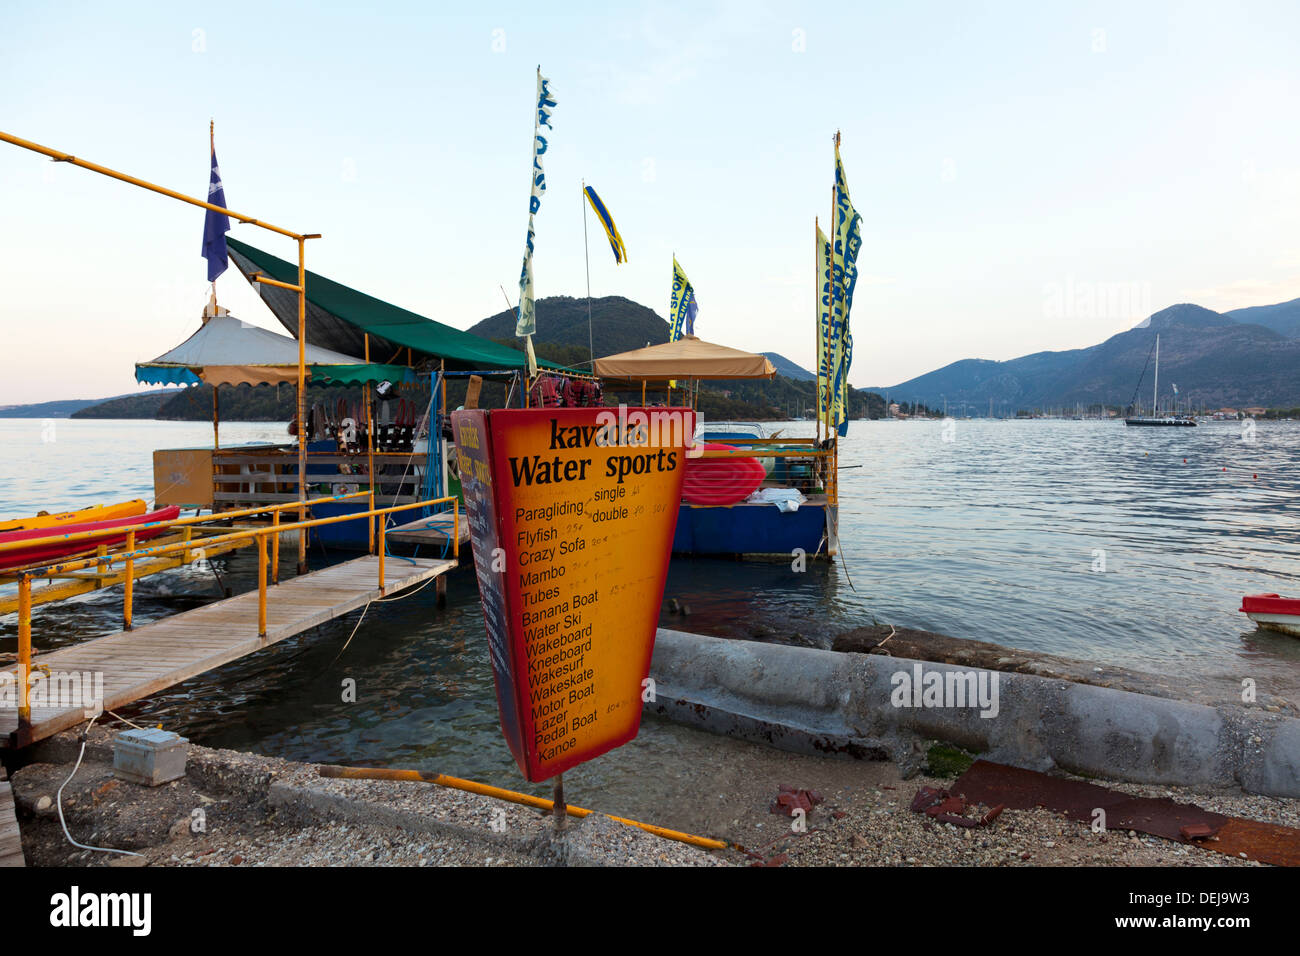 Kavadas watersport water sport center in Nidri Lefkas Lefkada Greek Island Greece - Stock Image